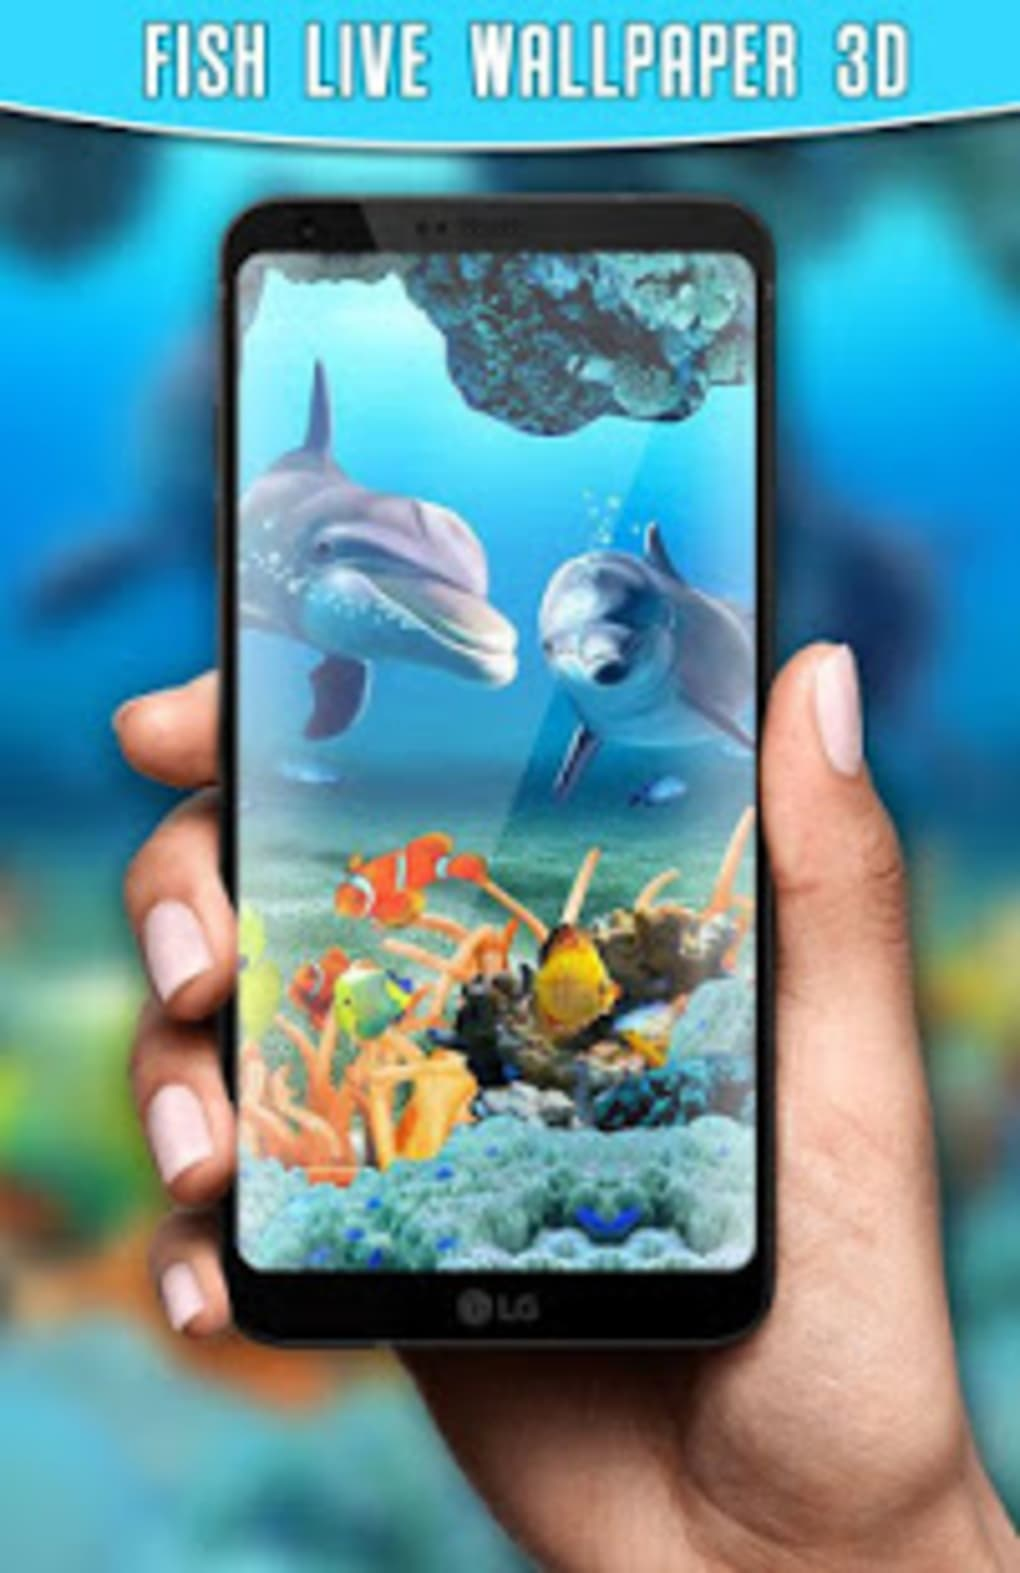 9 90374 fish live wallpaper 3d aquarium background hd mobile